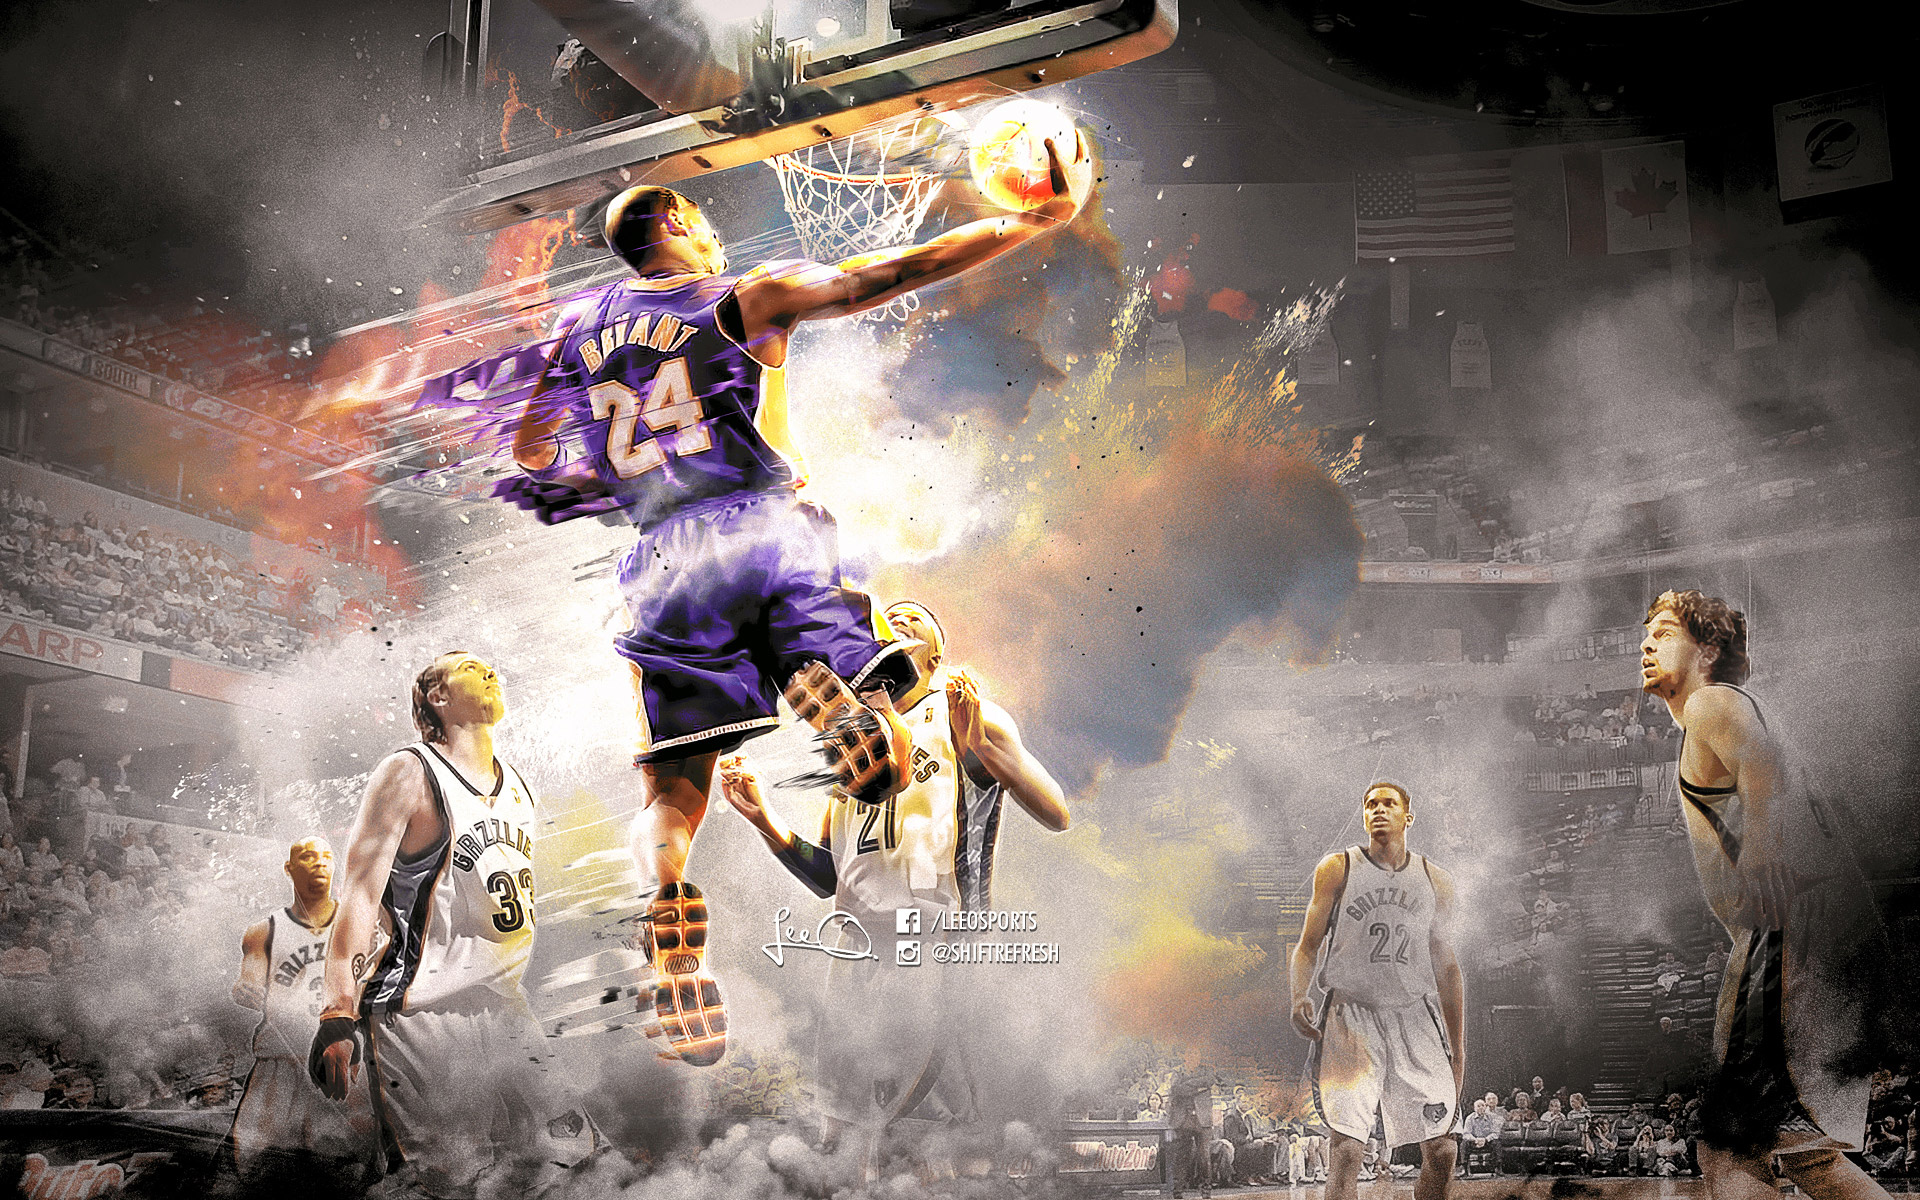 kobe bryant wallpaper 2016 - photo #1